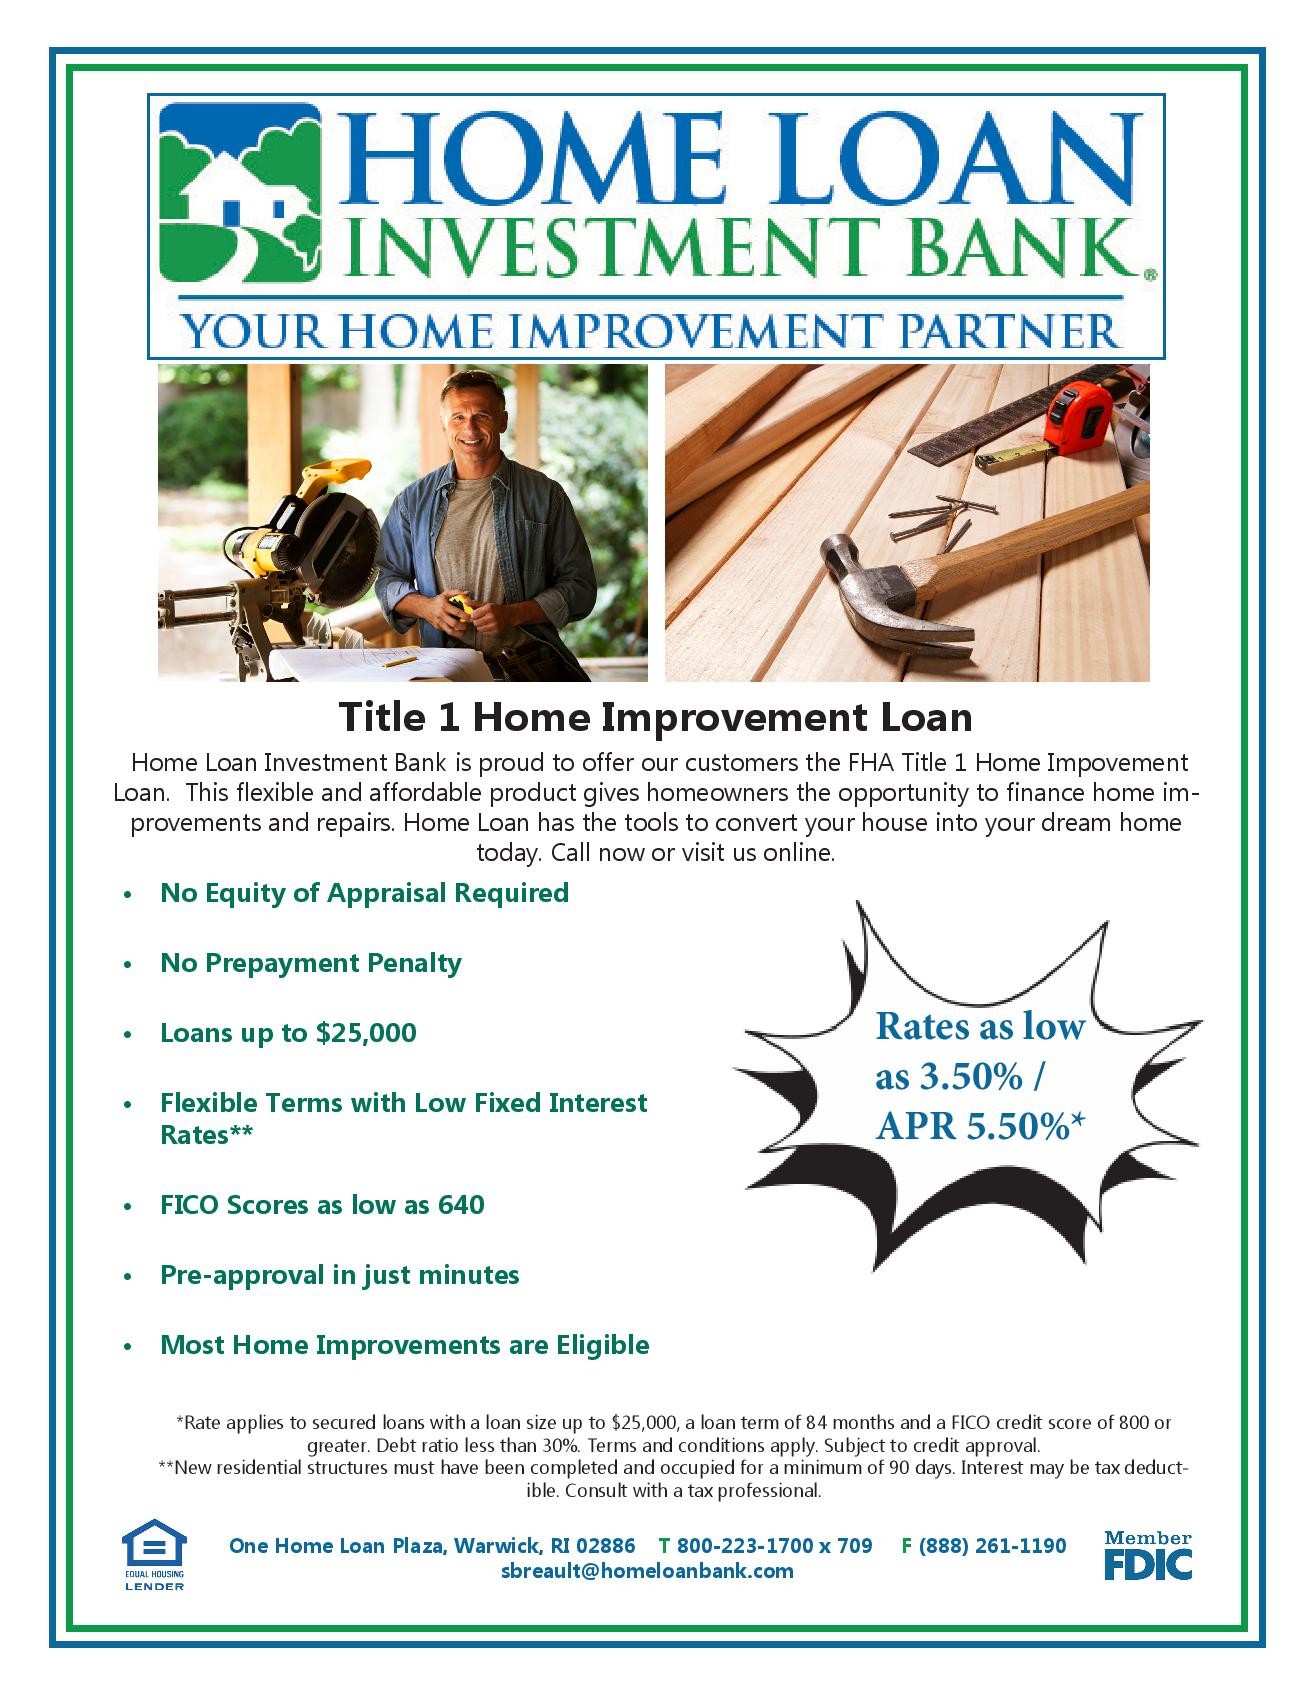 home loan investment bank financing information